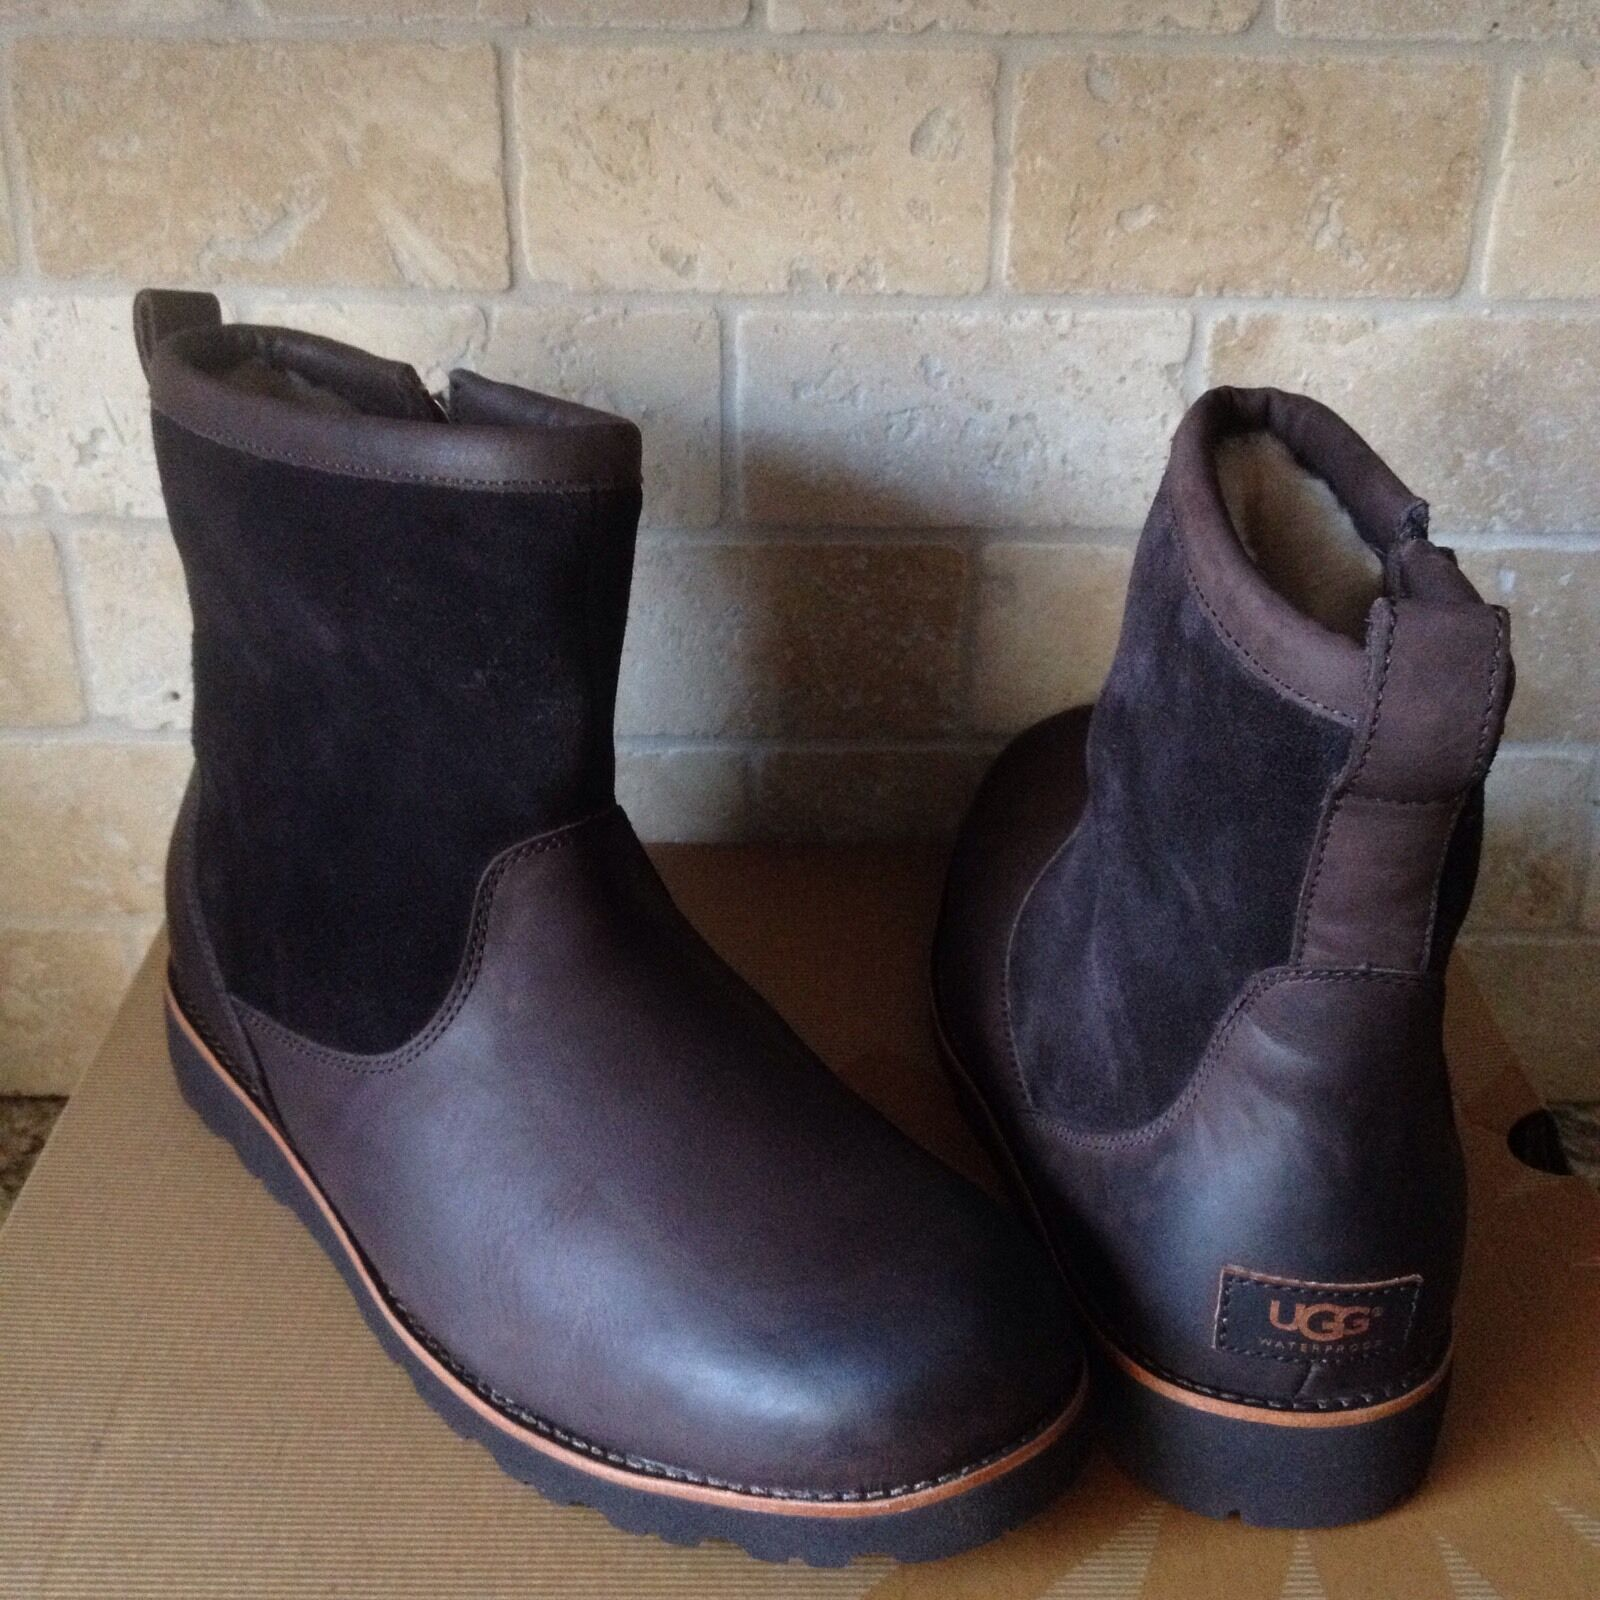 35921801b24 UGG HENDREN TL STOUT BROWN WATERPROOF LEATHER WORK BOOTS SIZE US 10 MENS